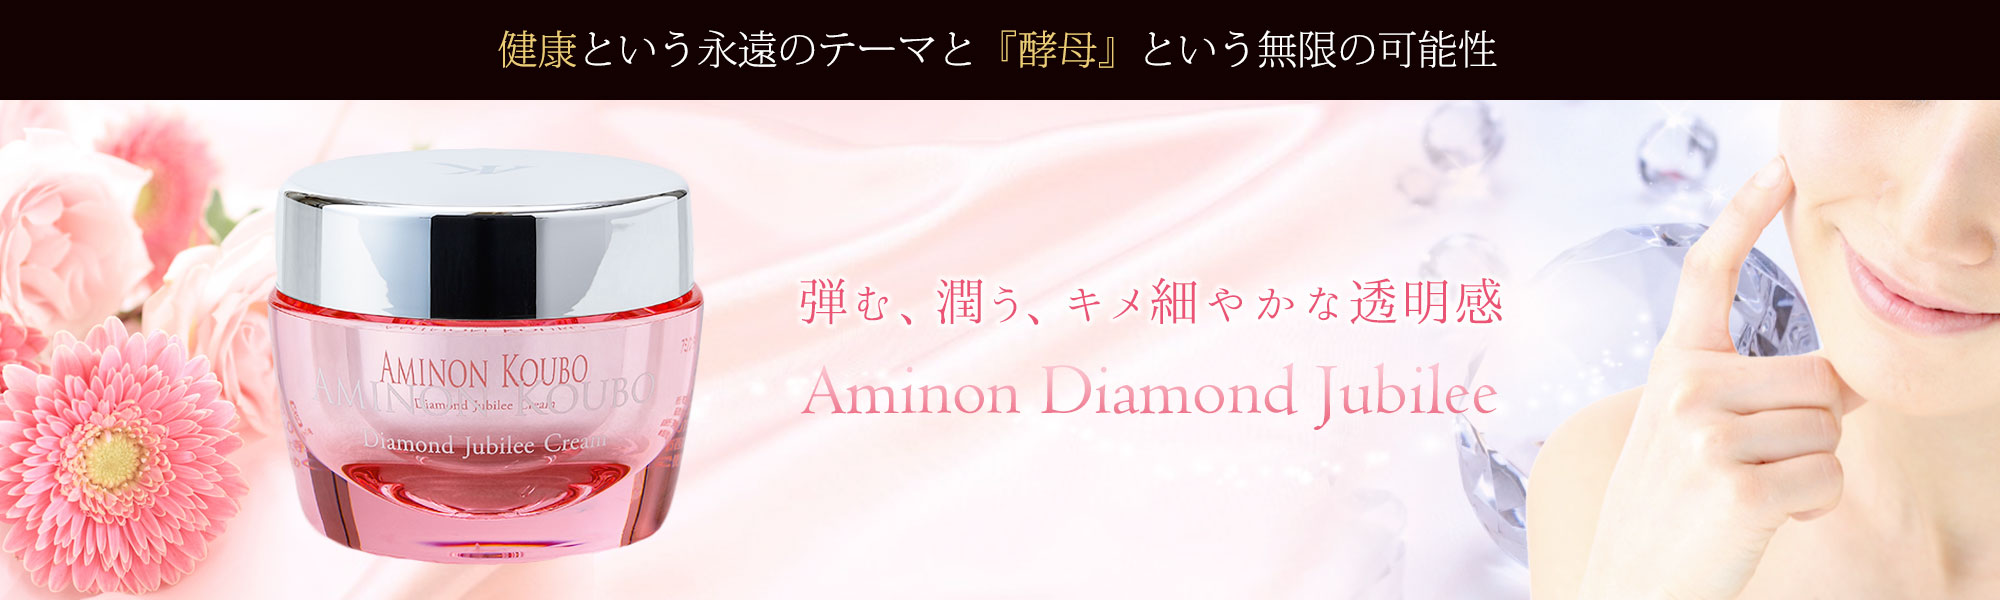 Aminon Diamond Jubilee